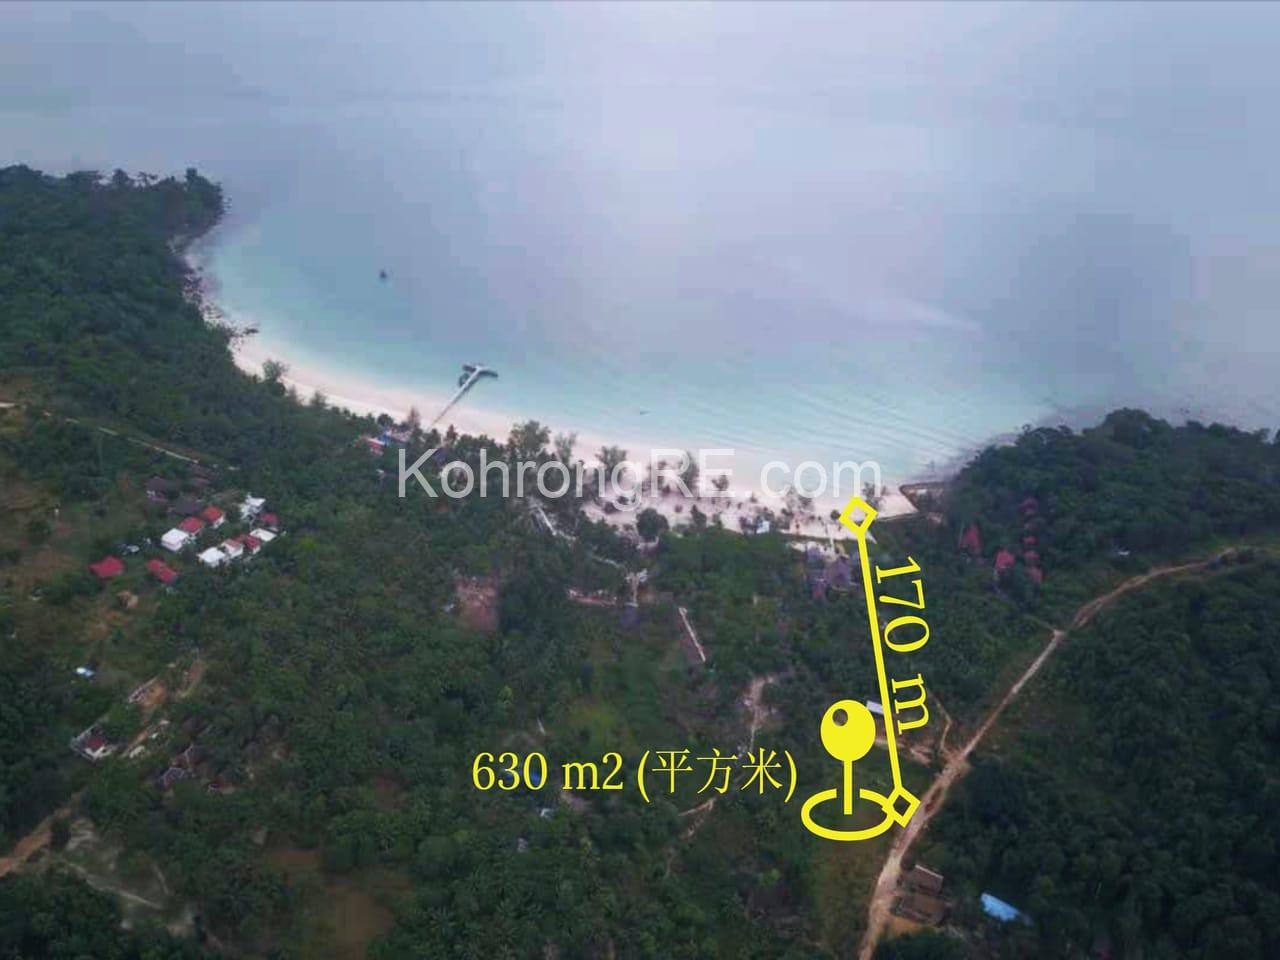 Koh Rong land for sale - near coconut beach (5)